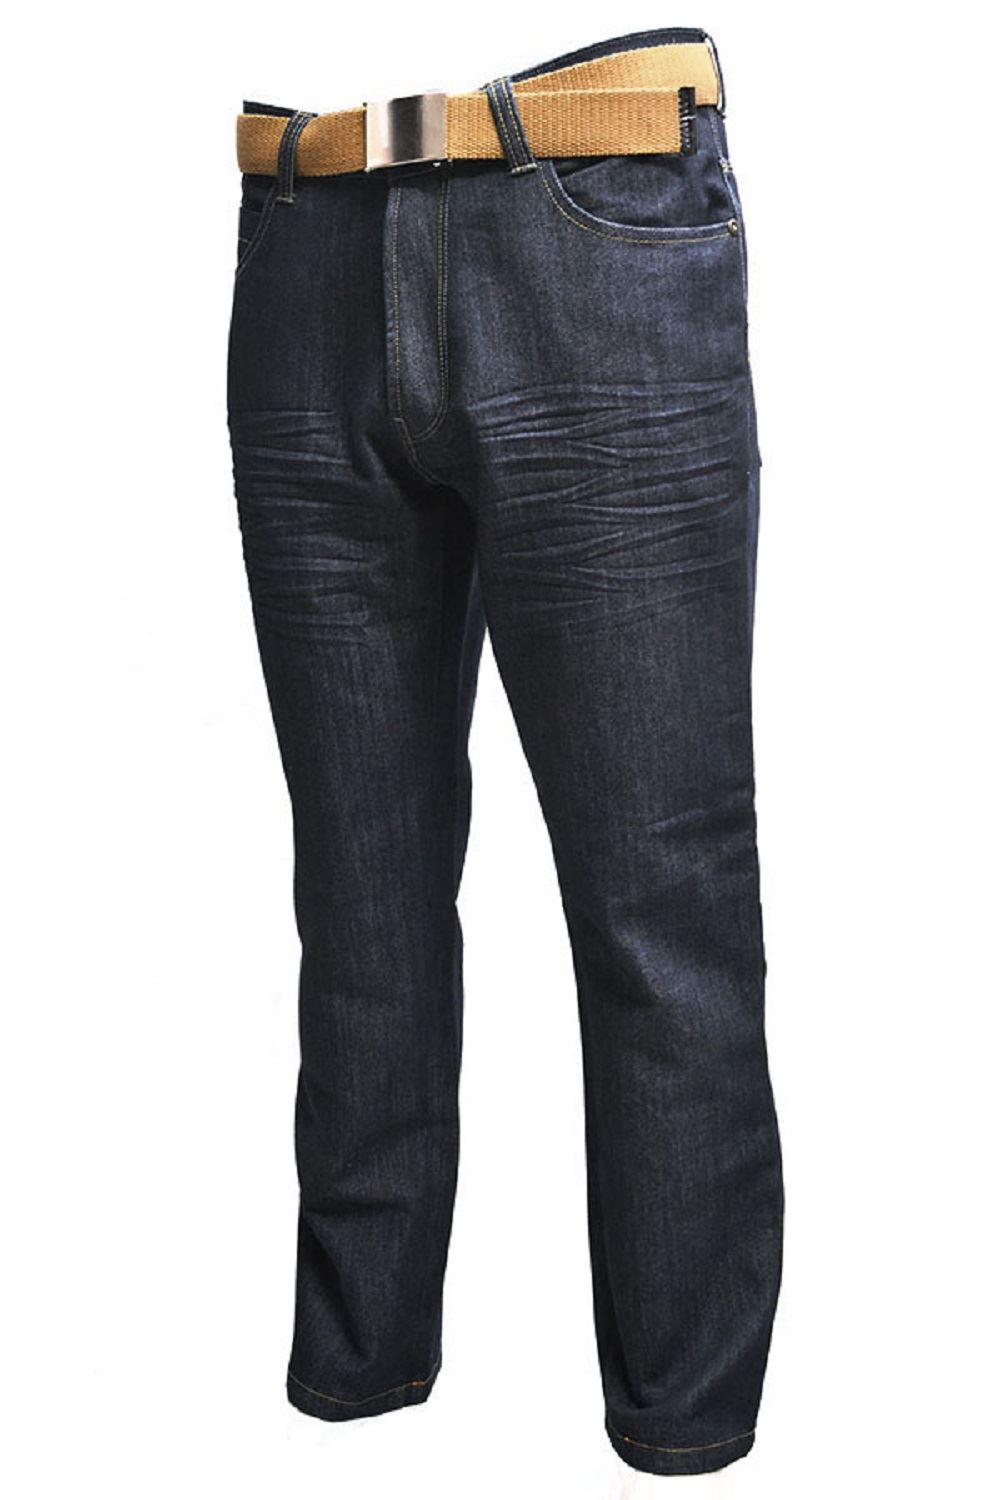 Mens-Classic-Fit-Black-Indigo-Jeans-Kori-By-Creon-Previs thumbnail 22